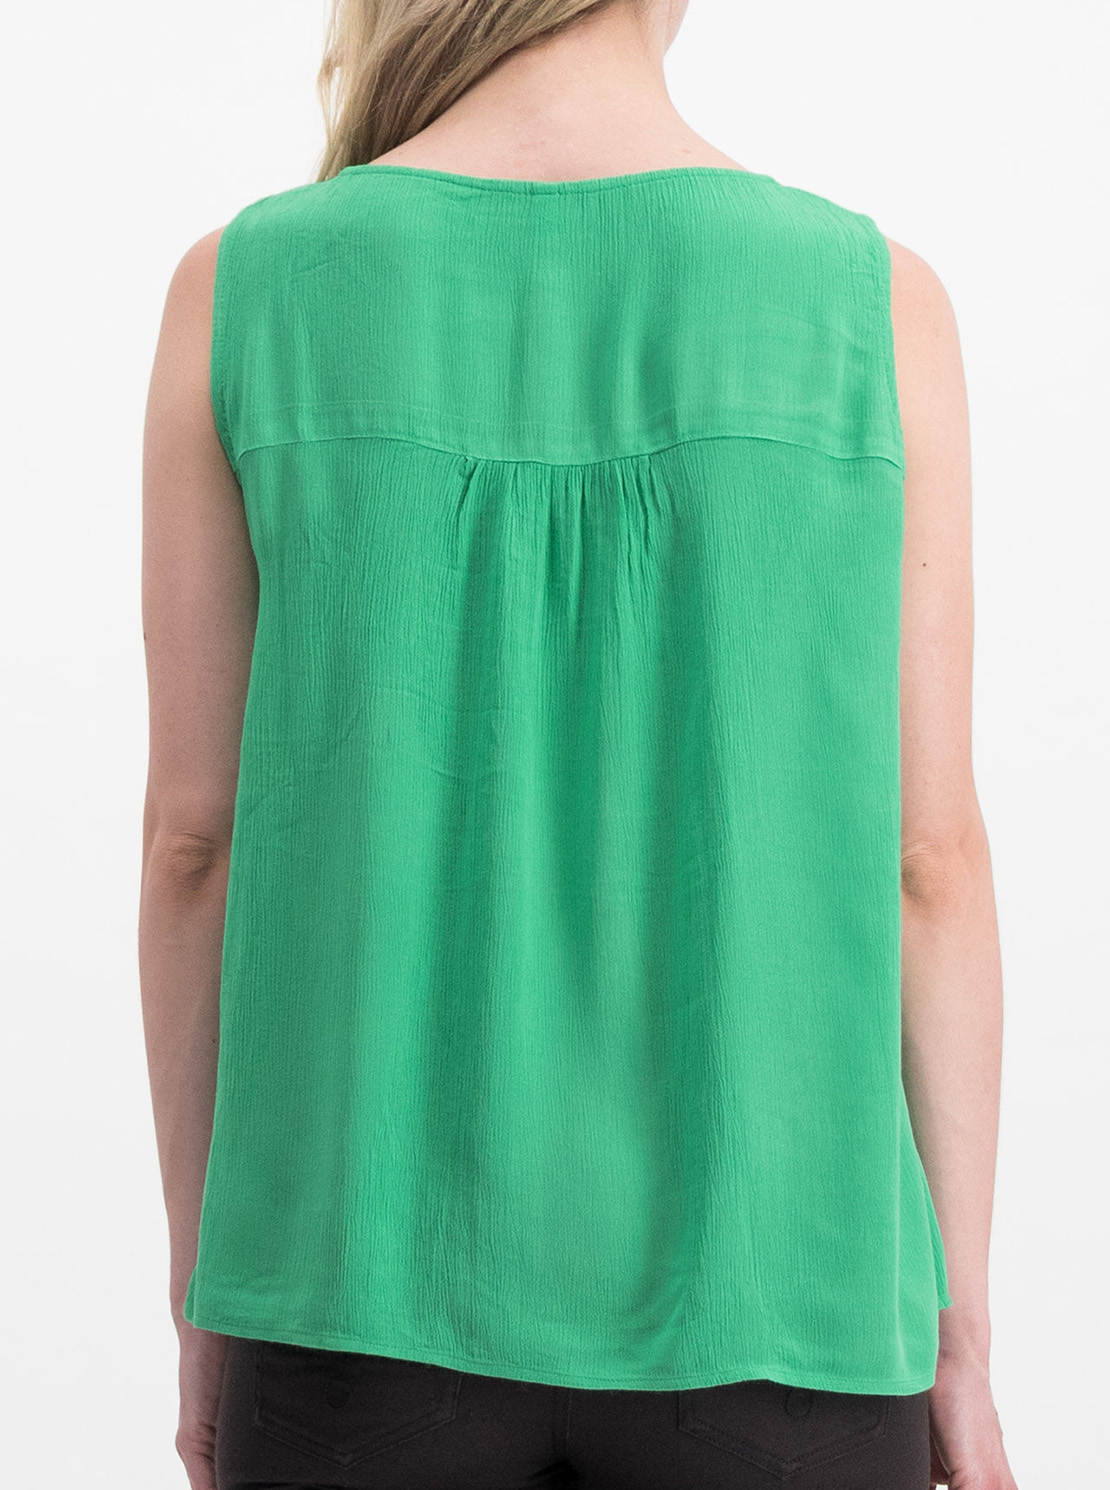 Green blouse with Blutsgeschwister embroidery